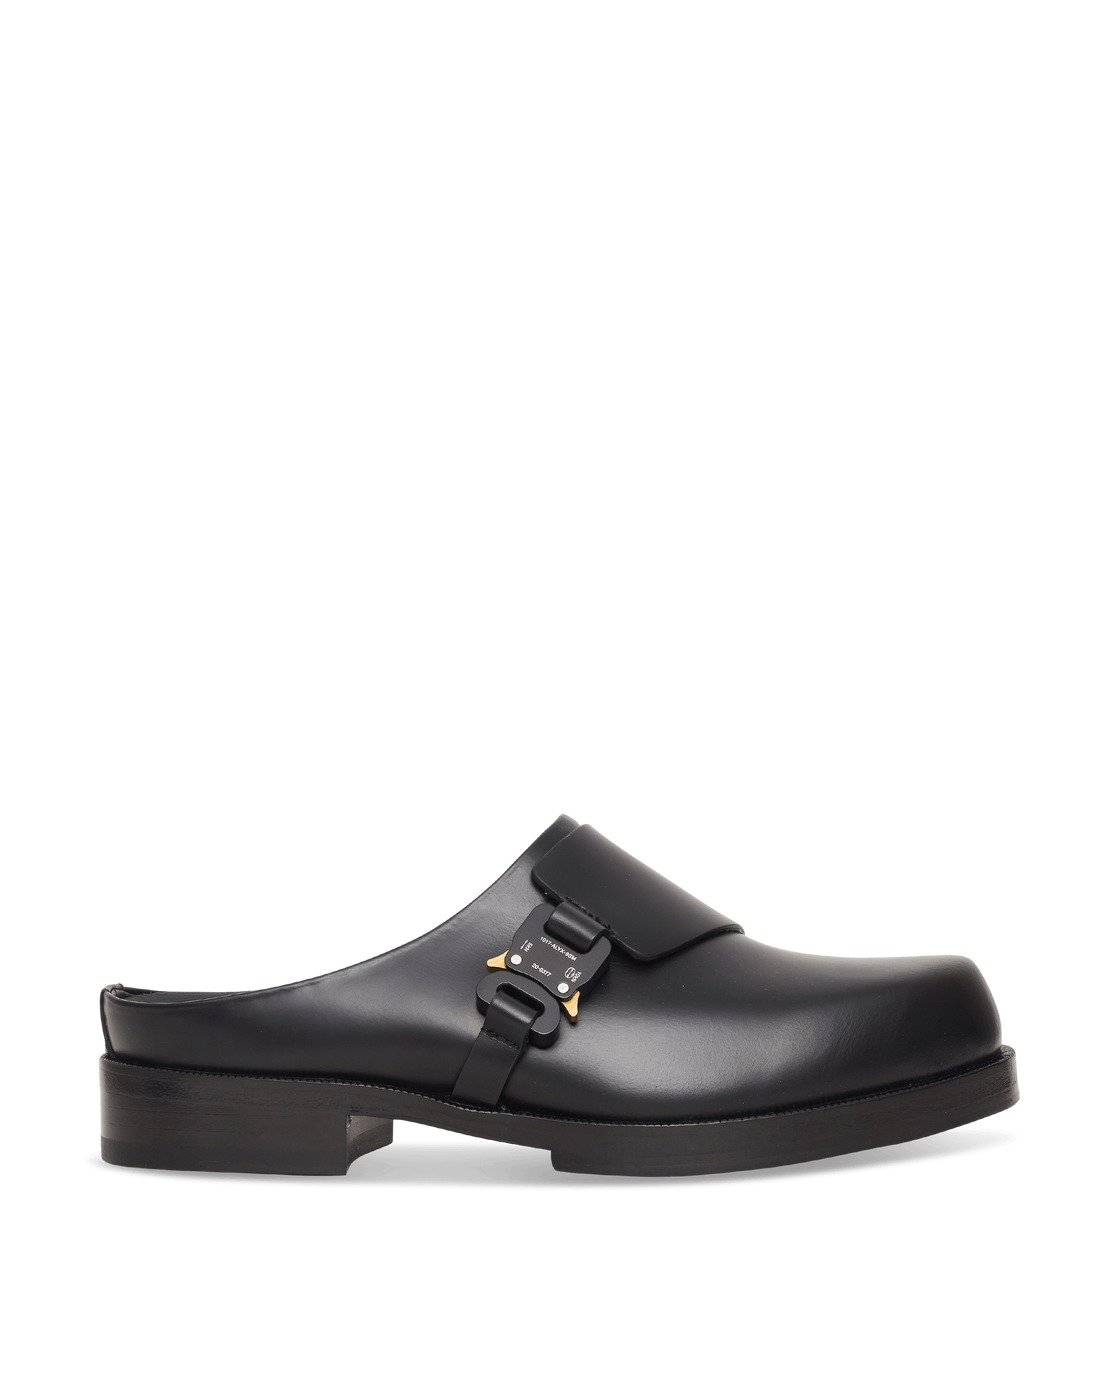 Photo: 1017 Alyx 9sm Formal Clog With Buckle Black